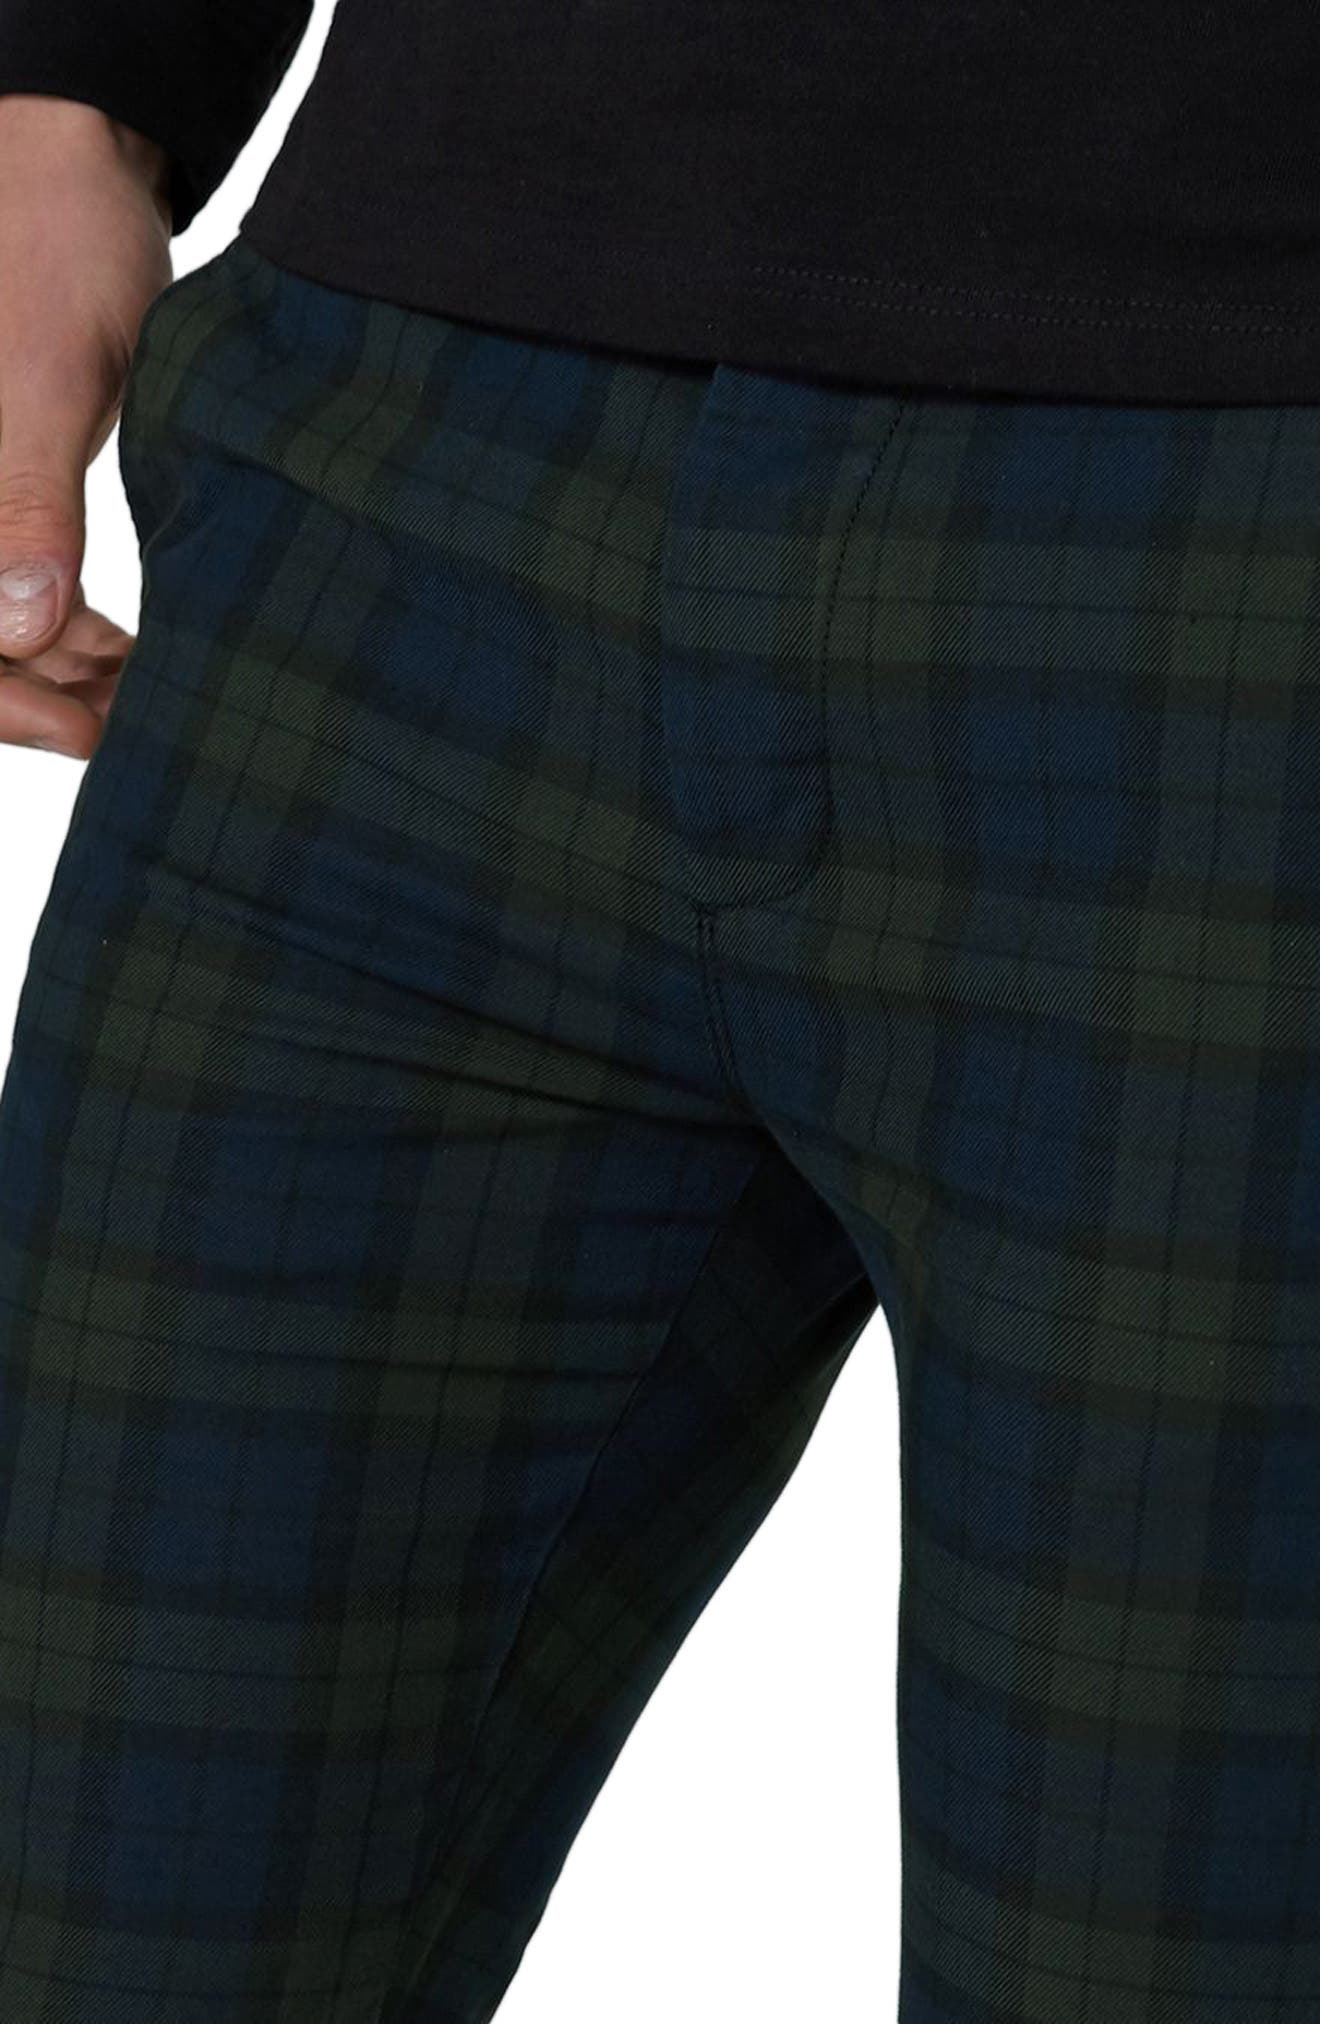 Black Watch Check Stretch Skinny Fit Trousers,                             Alternate thumbnail 3, color,                             340